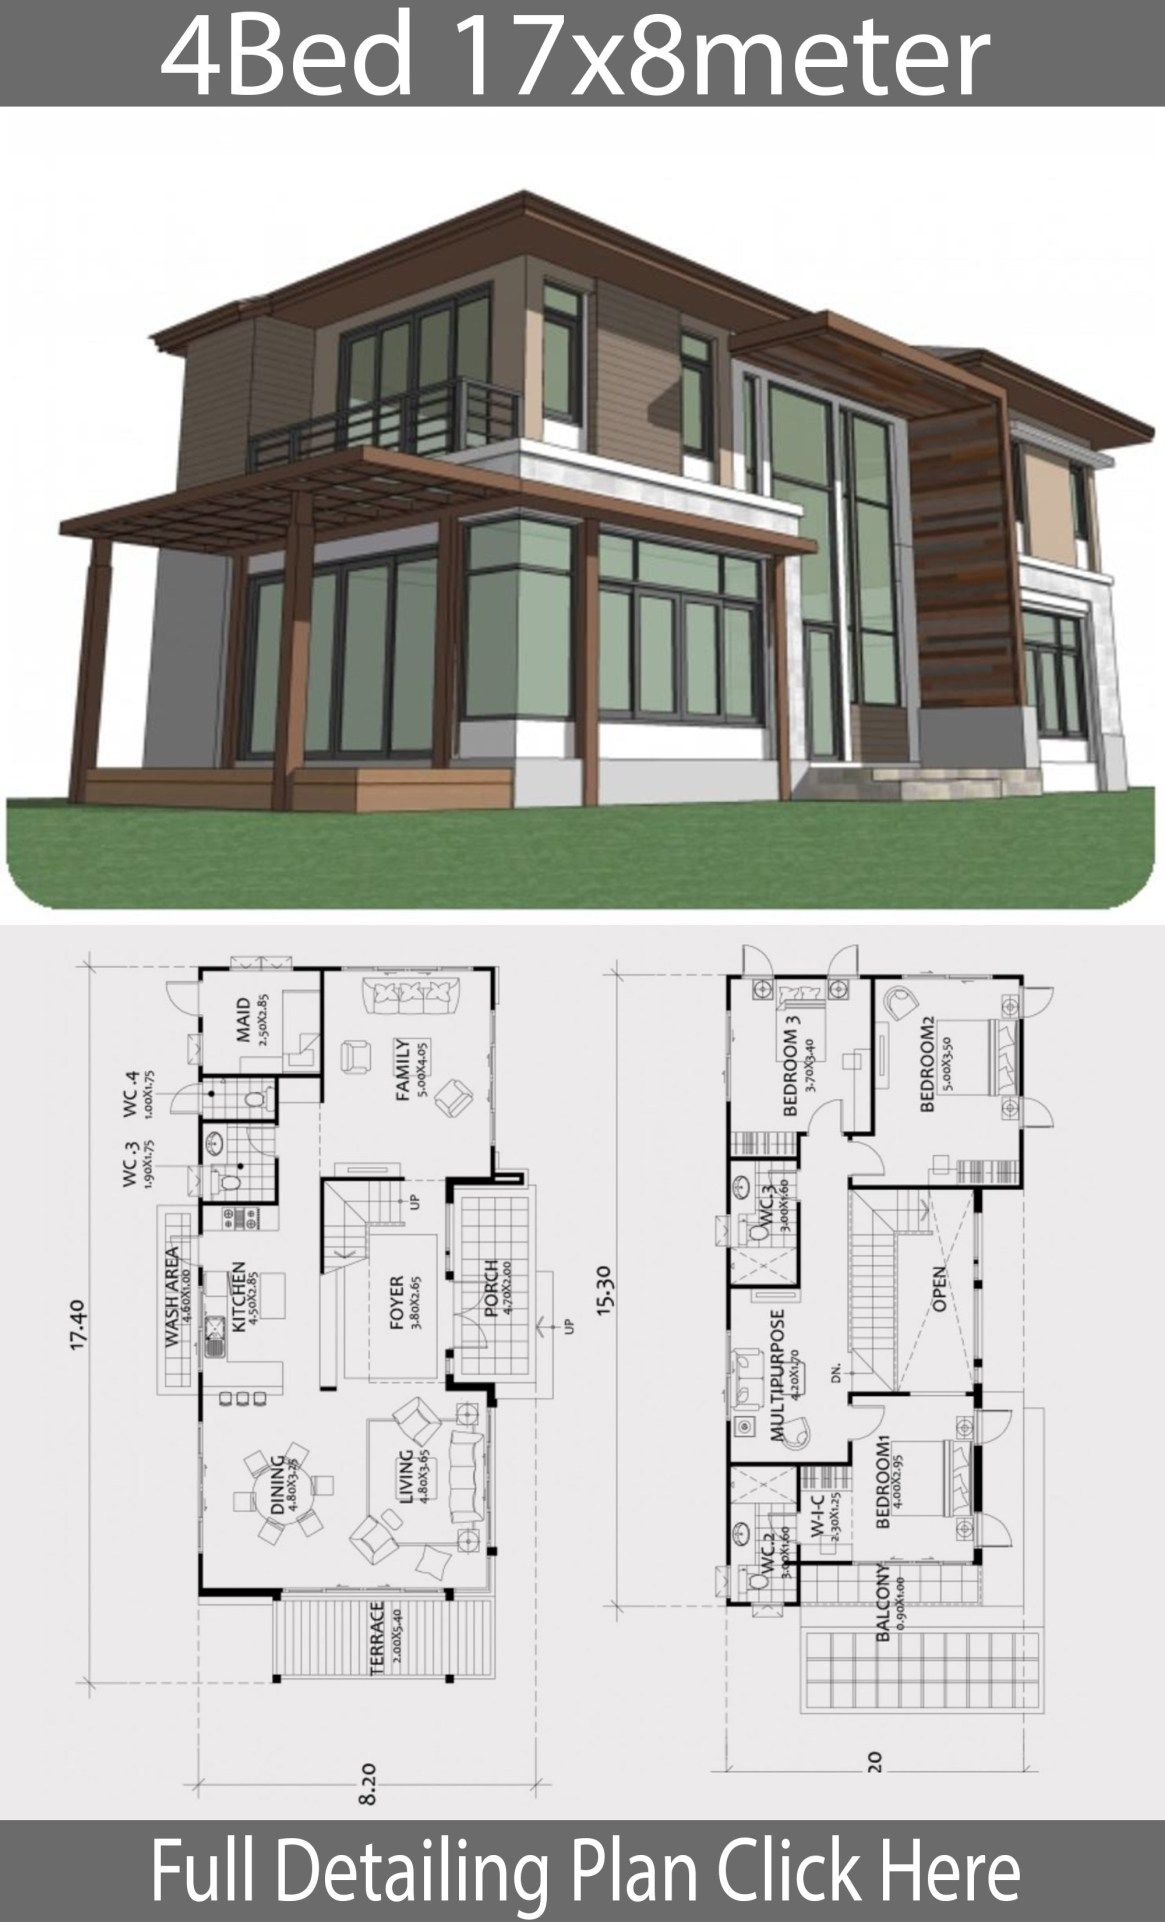 Home Design Plan 17x8m With 4 Bedrooms Home Design With Plansearch Beach Style House Plans Home Design Plan House Plans Mansion